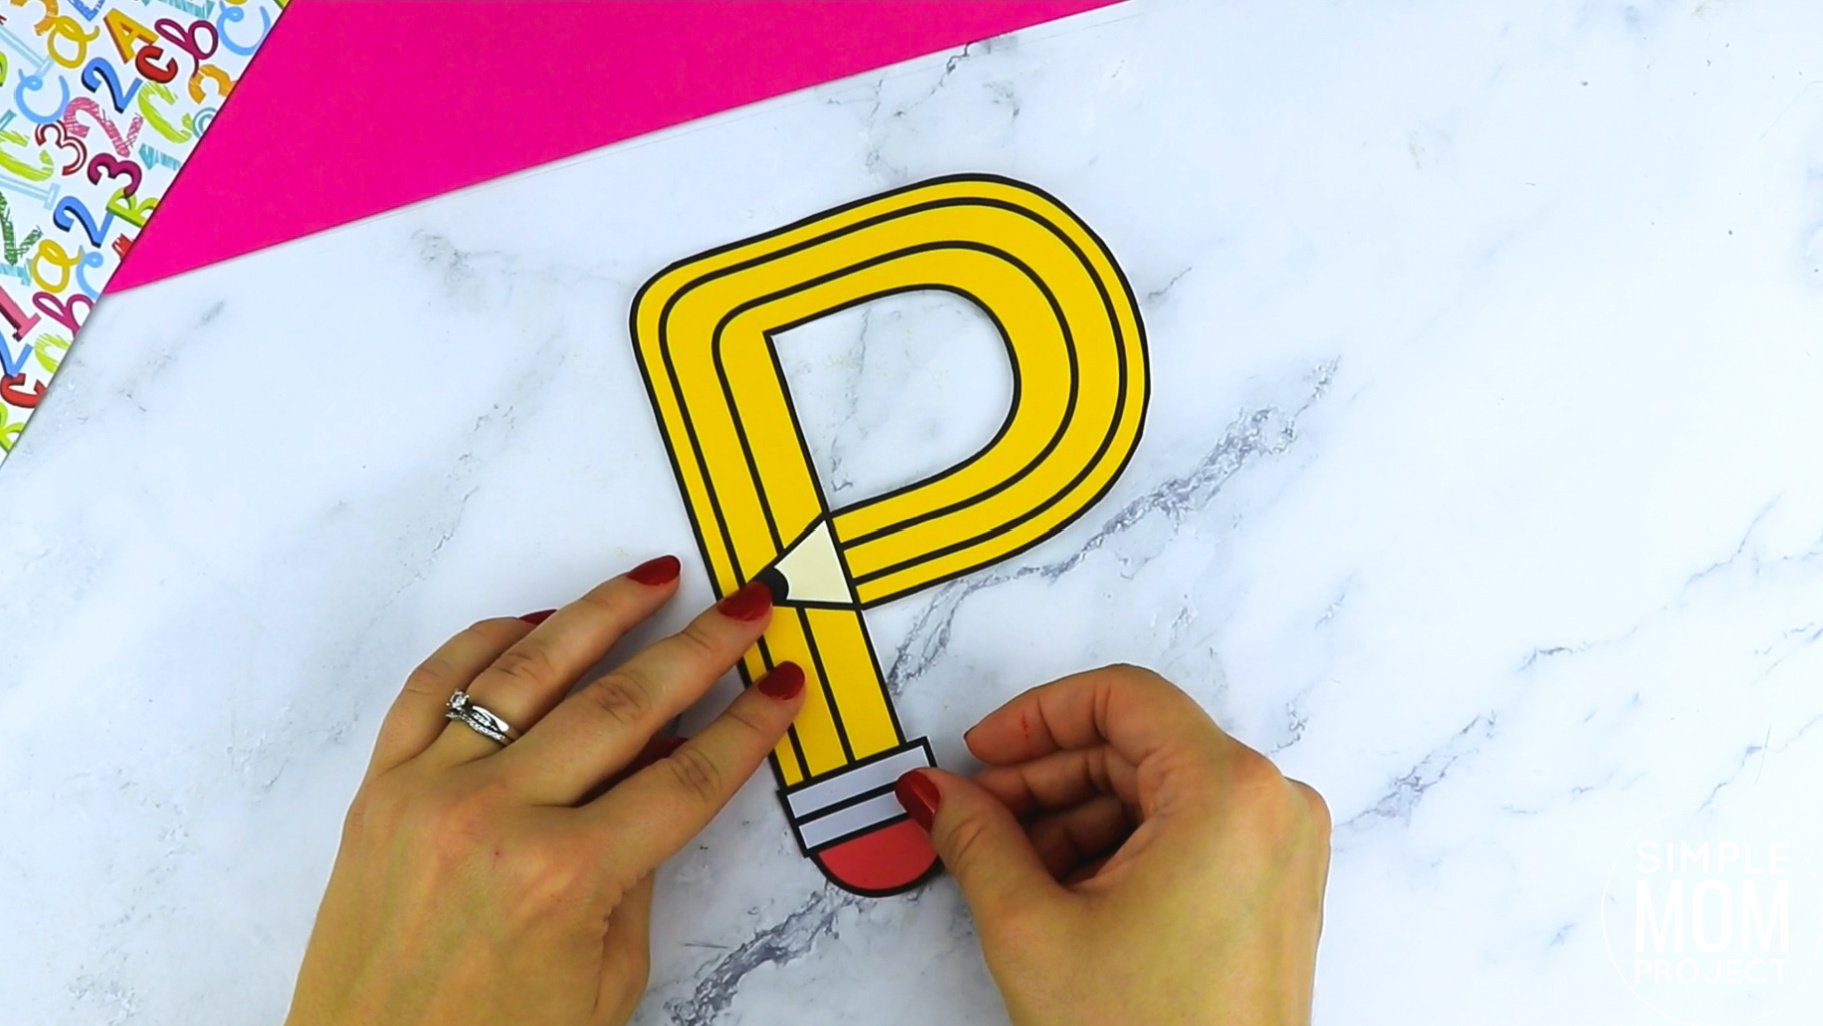 P is for Pencil Printable Craft Pencil Letter P Craft for Kids, preschoolers, toddlers and kindergartners